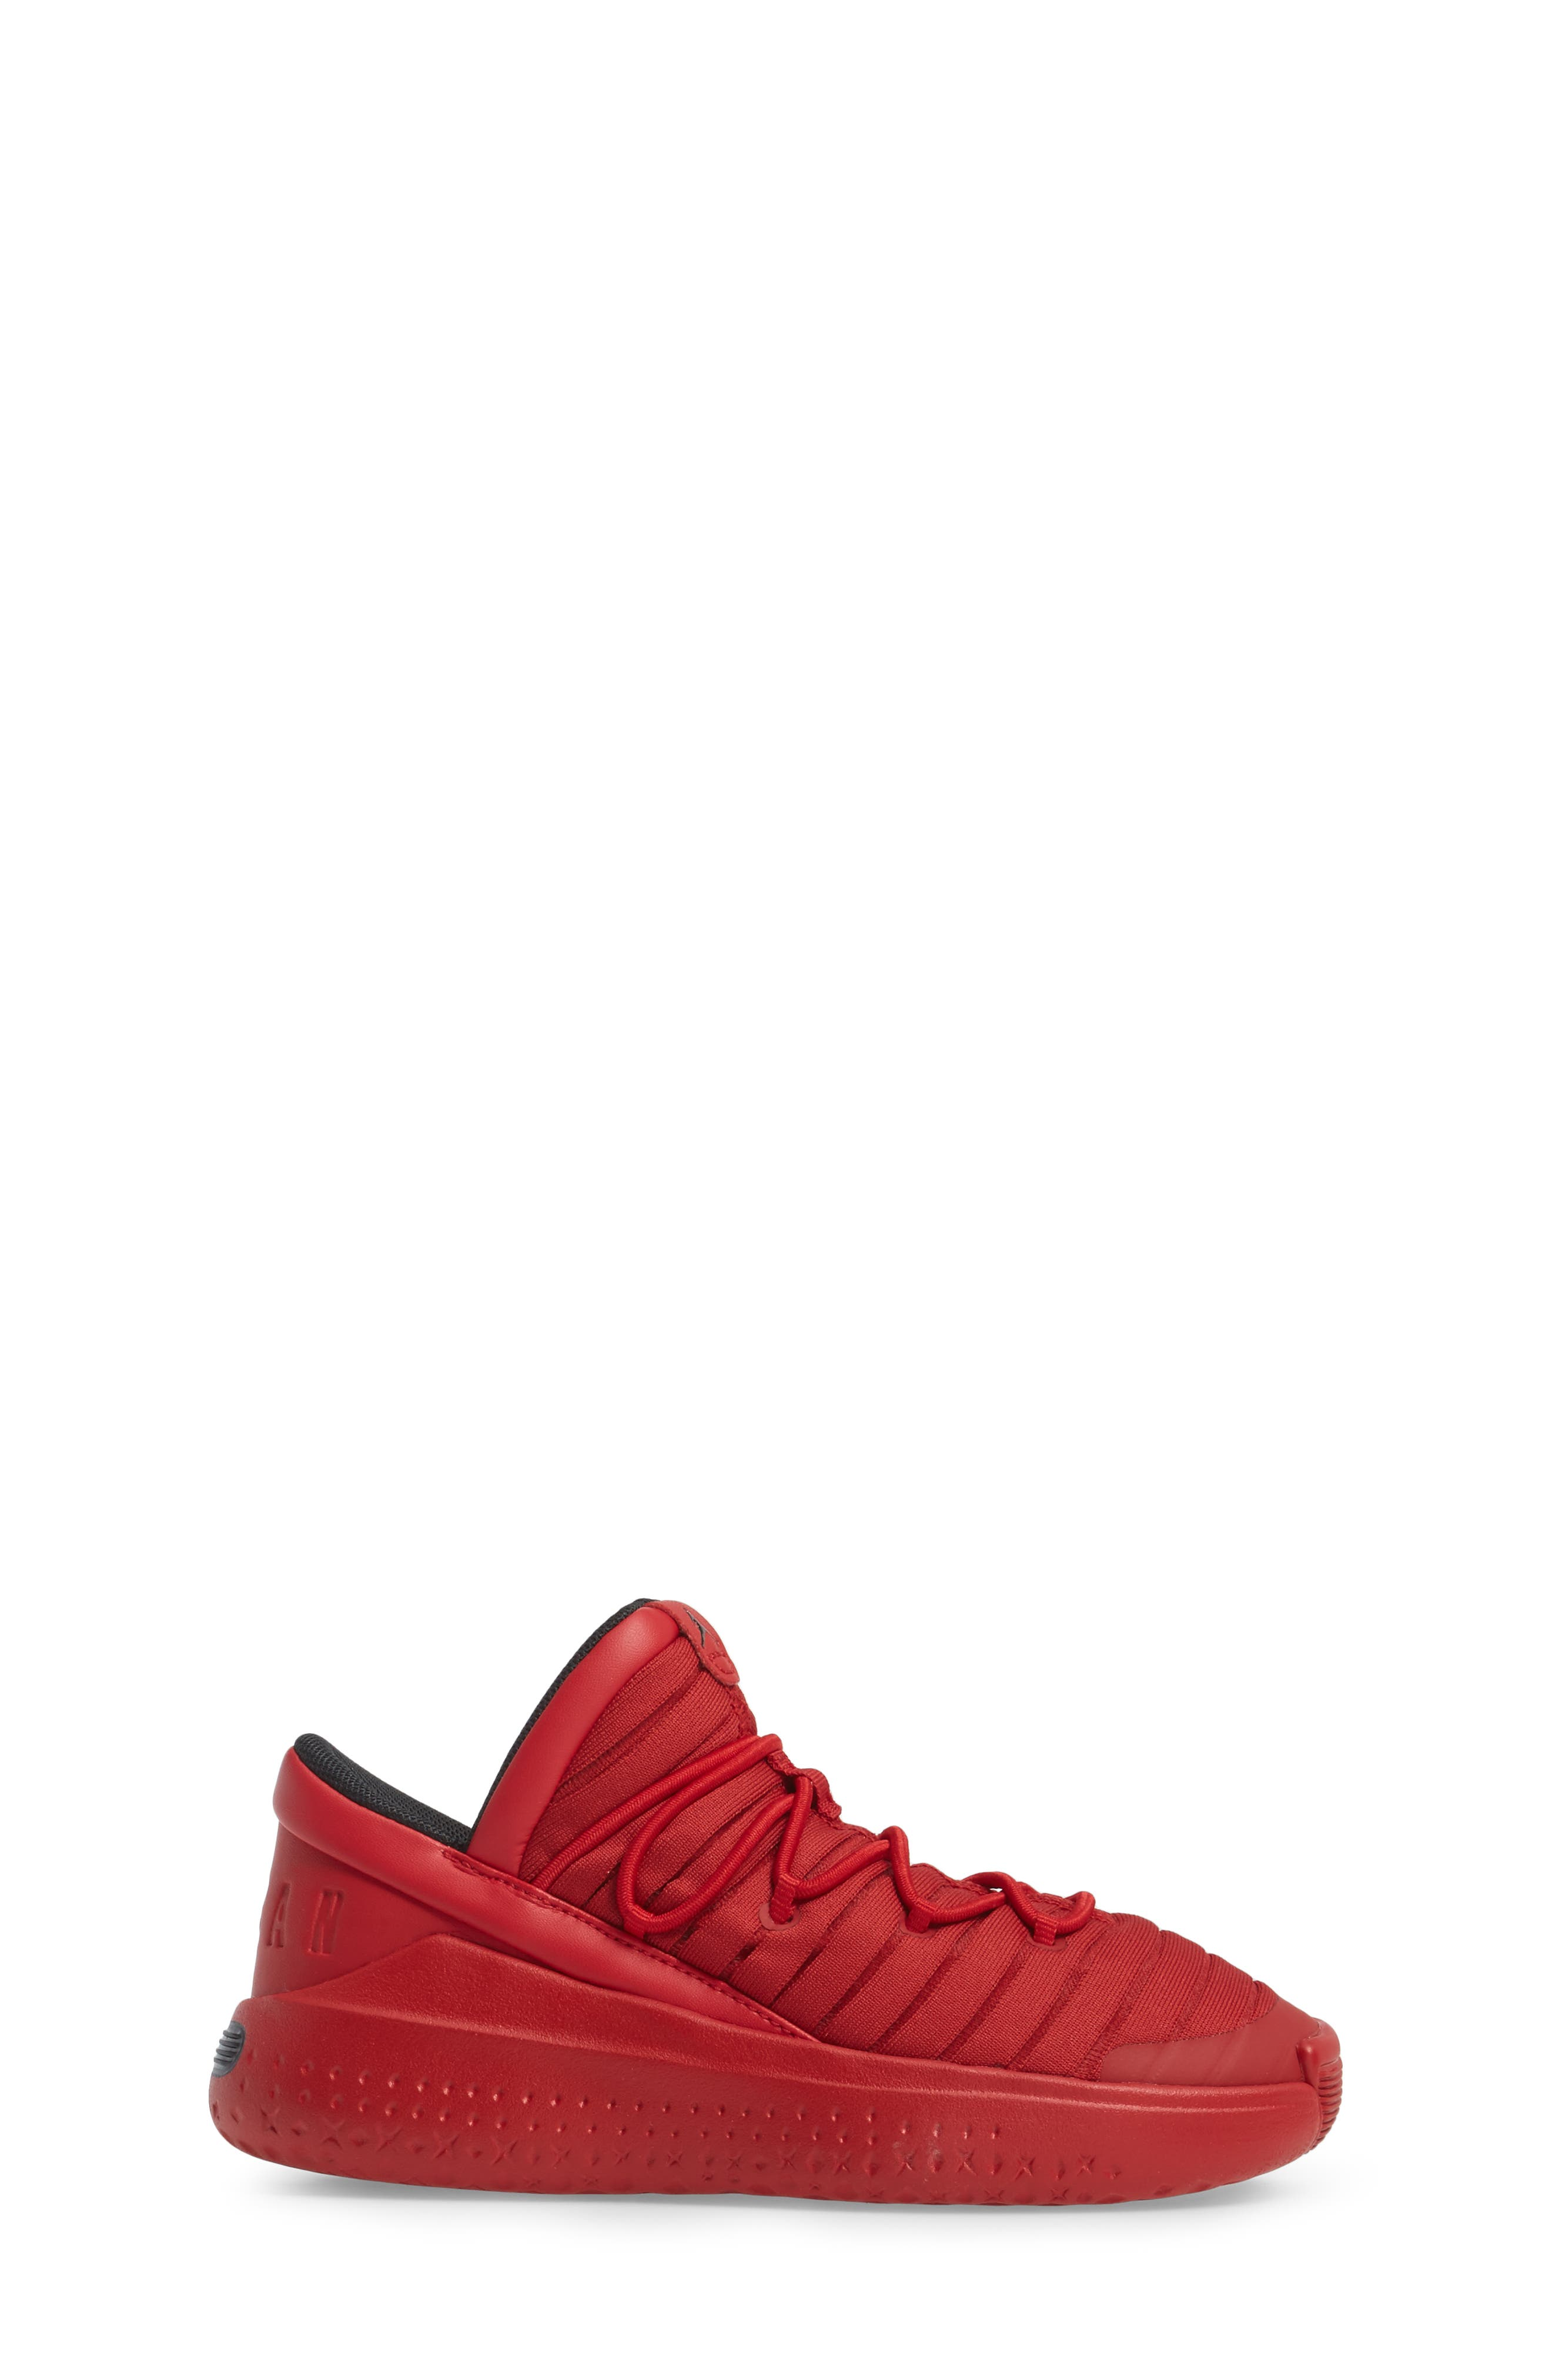 Flight Luxe Sneaker,                             Alternate thumbnail 3, color,                             Gym Red/ Black